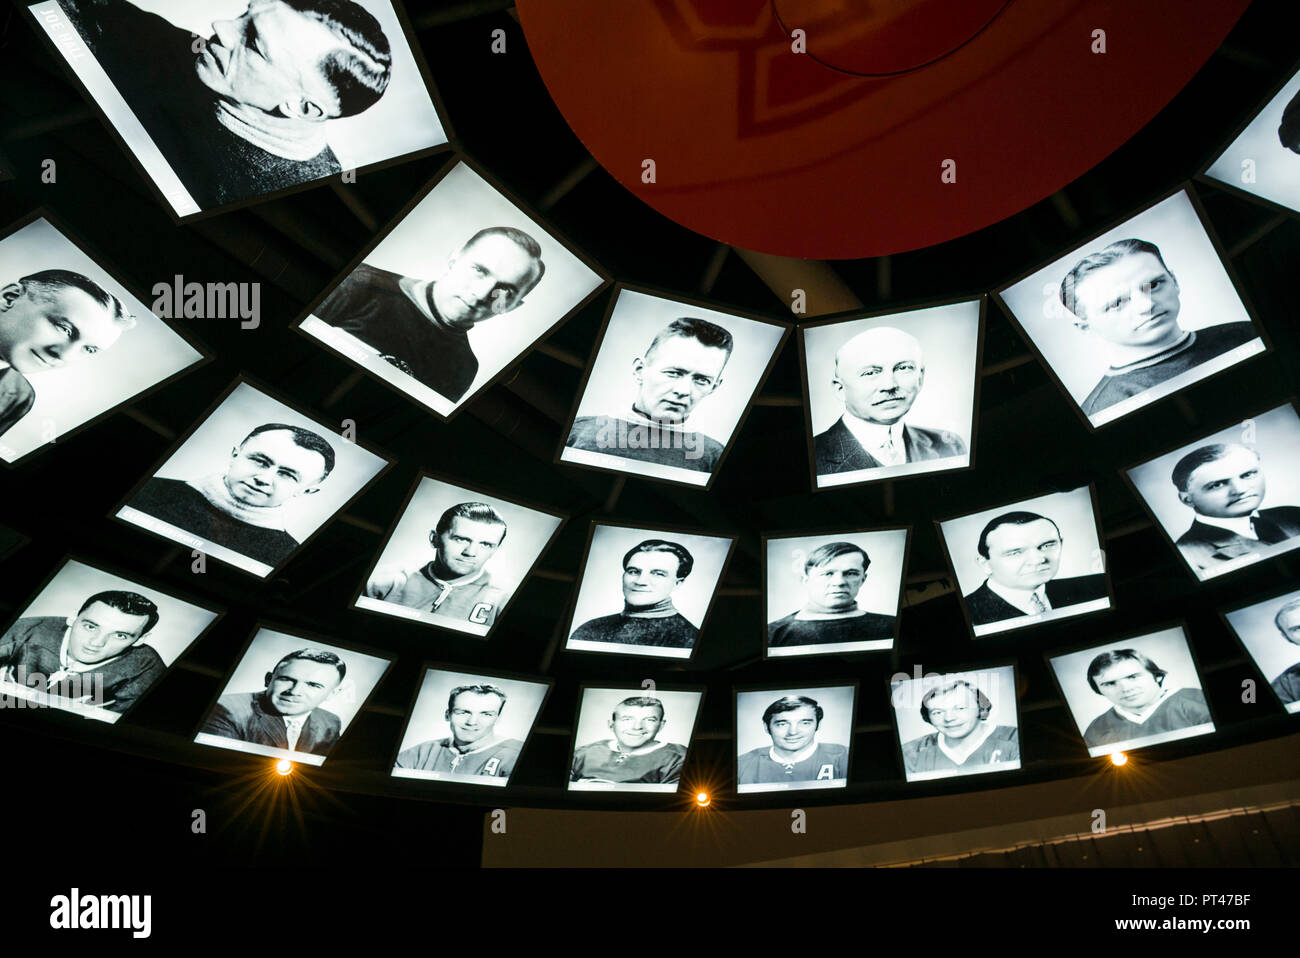 Canada, Quebec, Montreal, Bell Centre, Montreal Canadiens Hall of Fame, in arena of Montreal hockey team - Stock Image